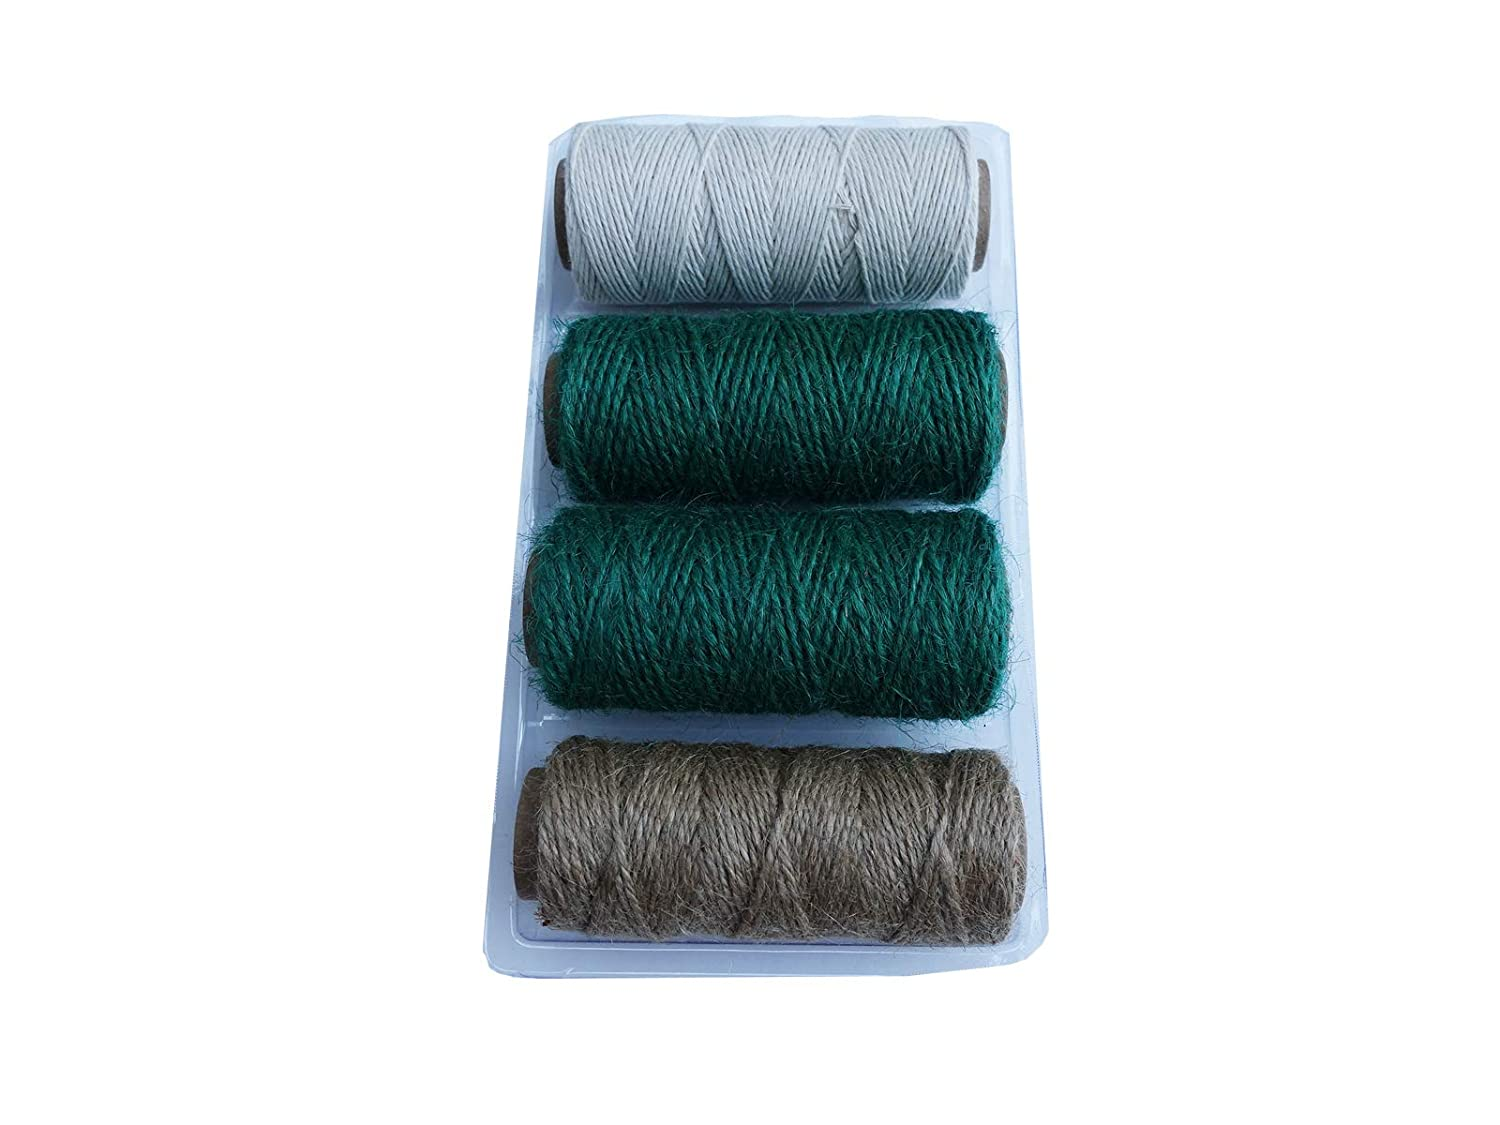 Qornerstone Garden Twine Spool Set Perfect for Gardening Heavy Duty 3-ply Etc Packing Gifts - Holds Approximately 115 feet of Twine Kole Arts /& Crafts All Natural Garden Twine//Rope//String